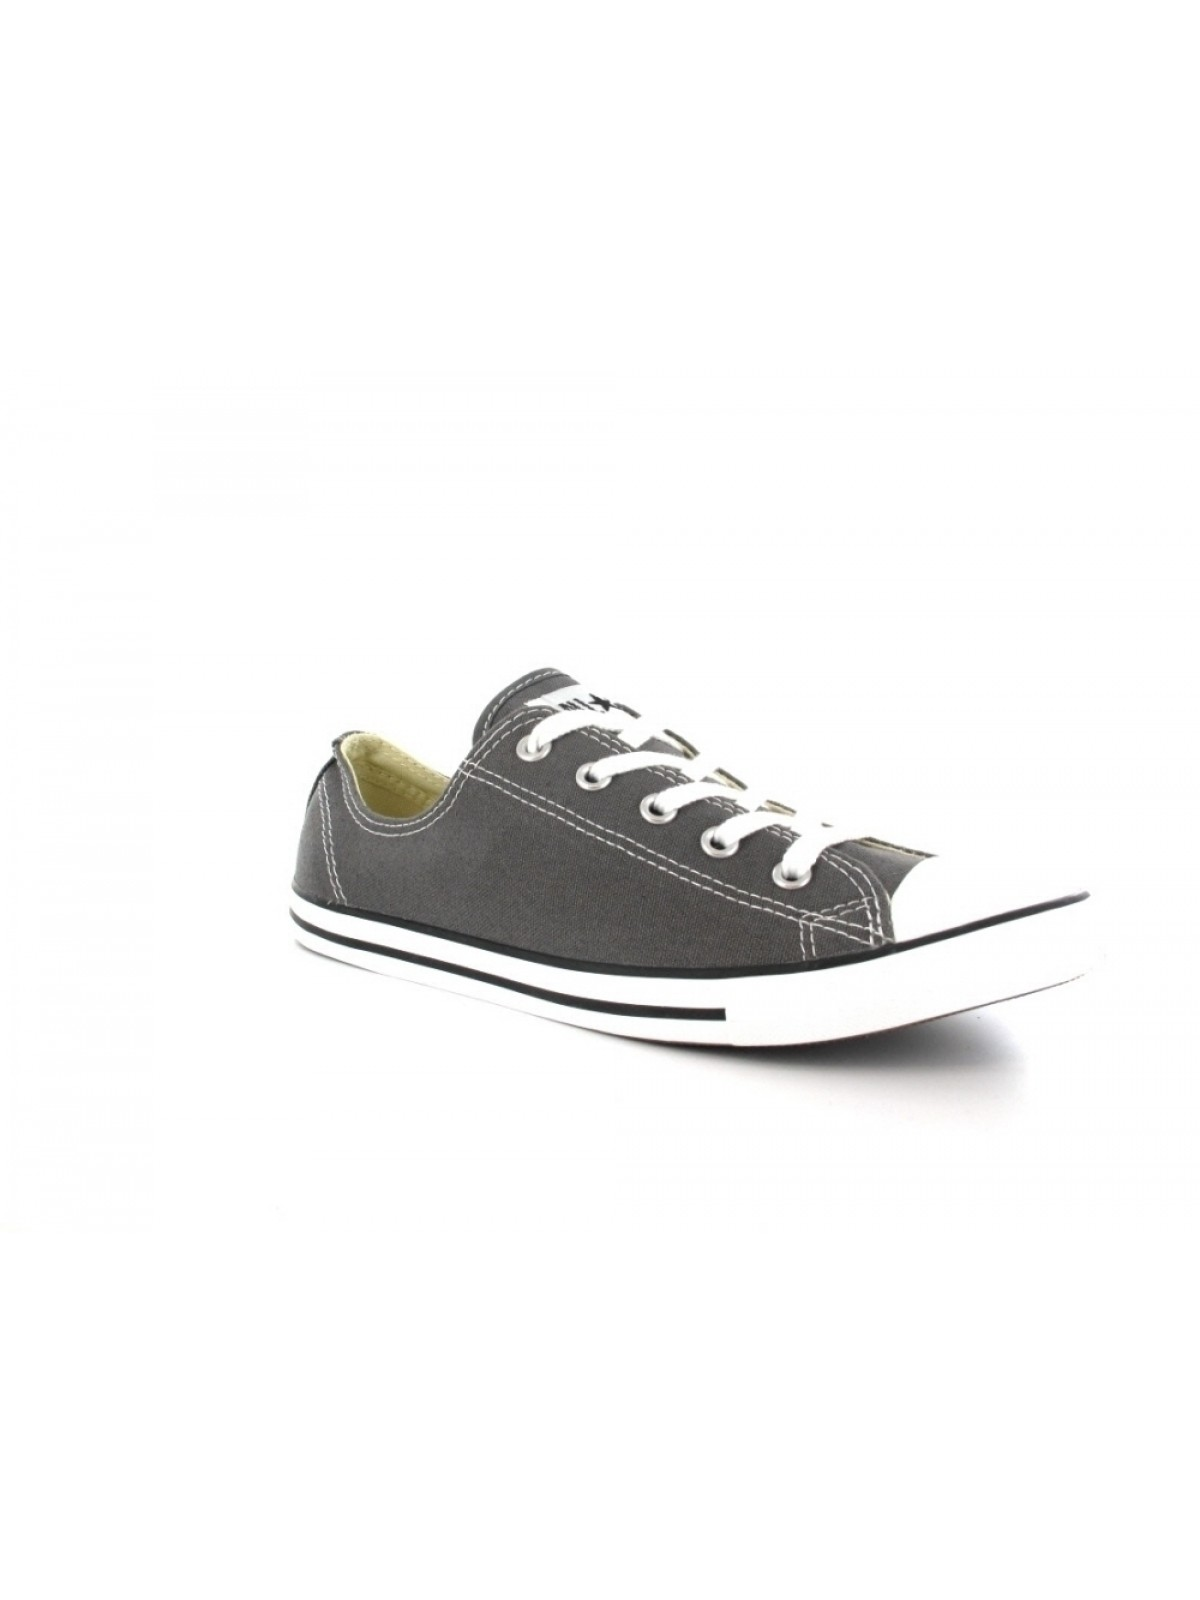 Converse Chuck Taylor Dainty toile basse anthracite